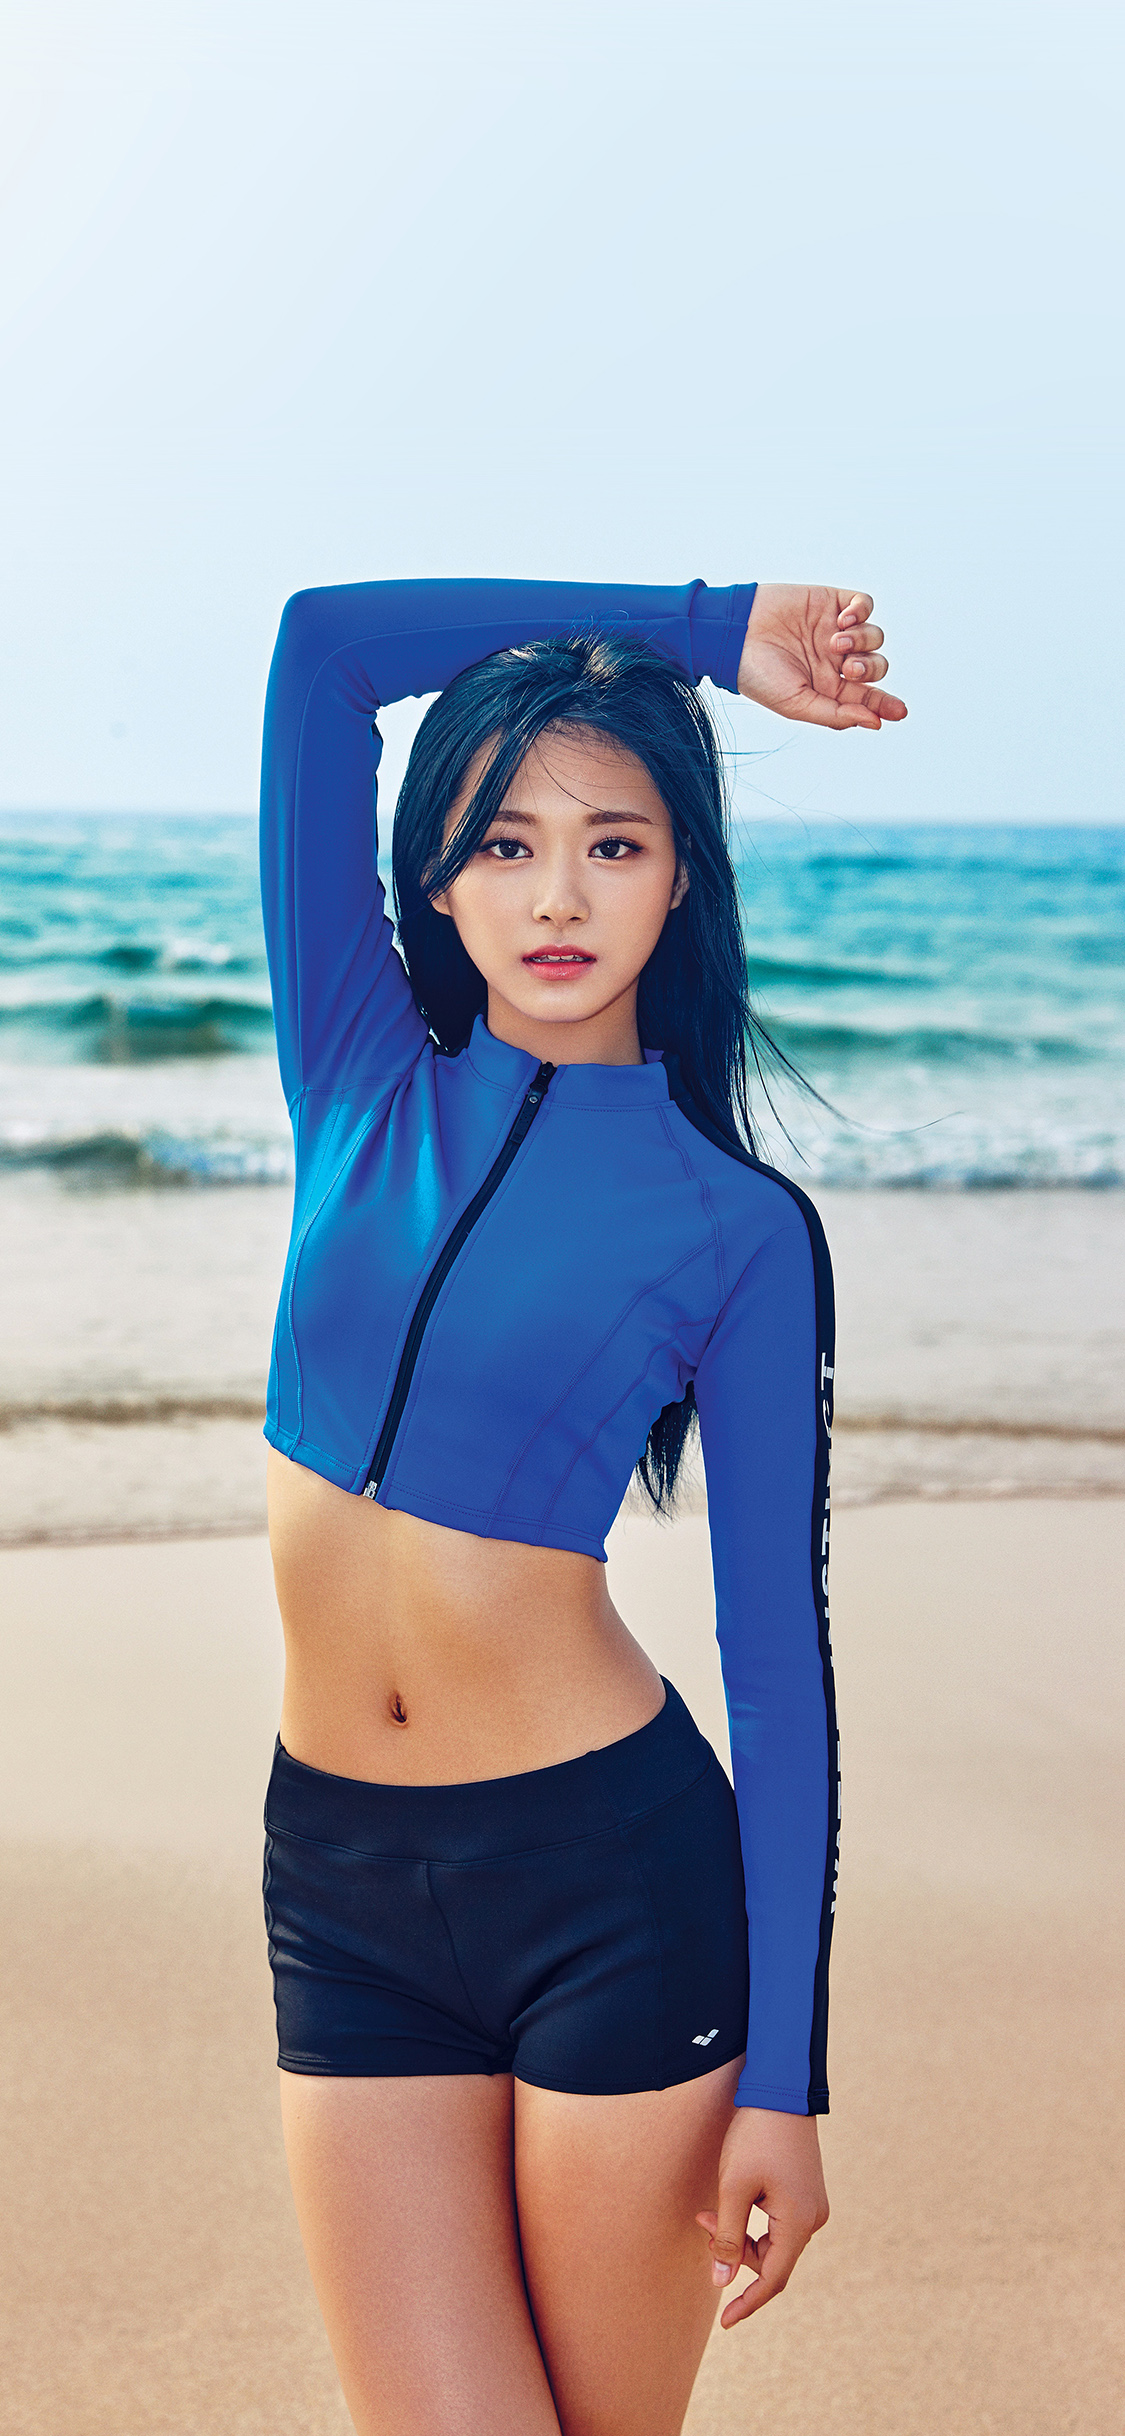 iPhoneXpapers.com-Apple-iPhone-wallpaper-hj09-tzuyu-kpop-girl-sea-summer-cool